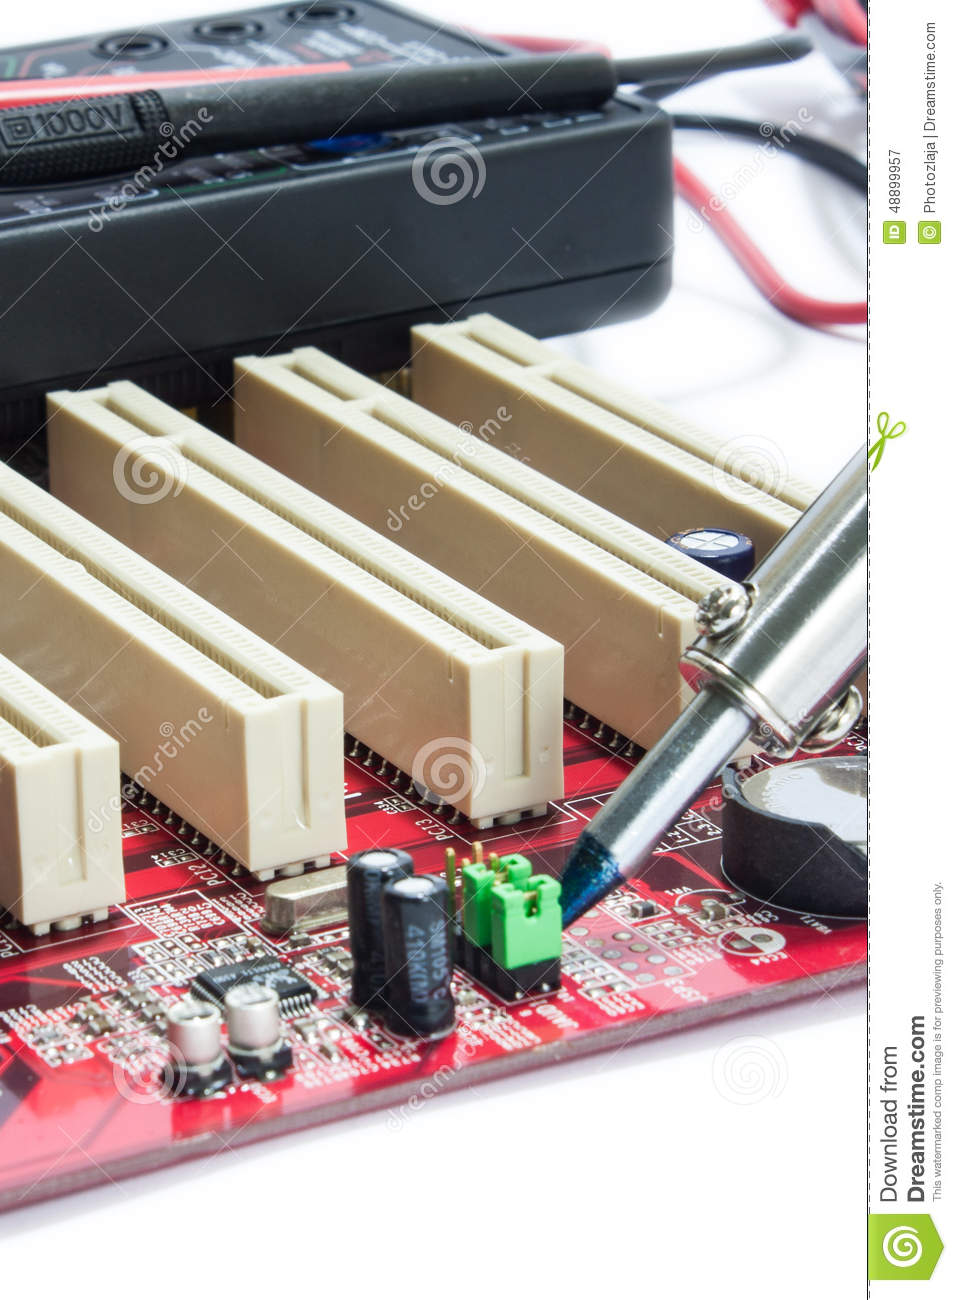 servicer soldered circuit board with a soldering iron stock photo image 48899957. Black Bedroom Furniture Sets. Home Design Ideas